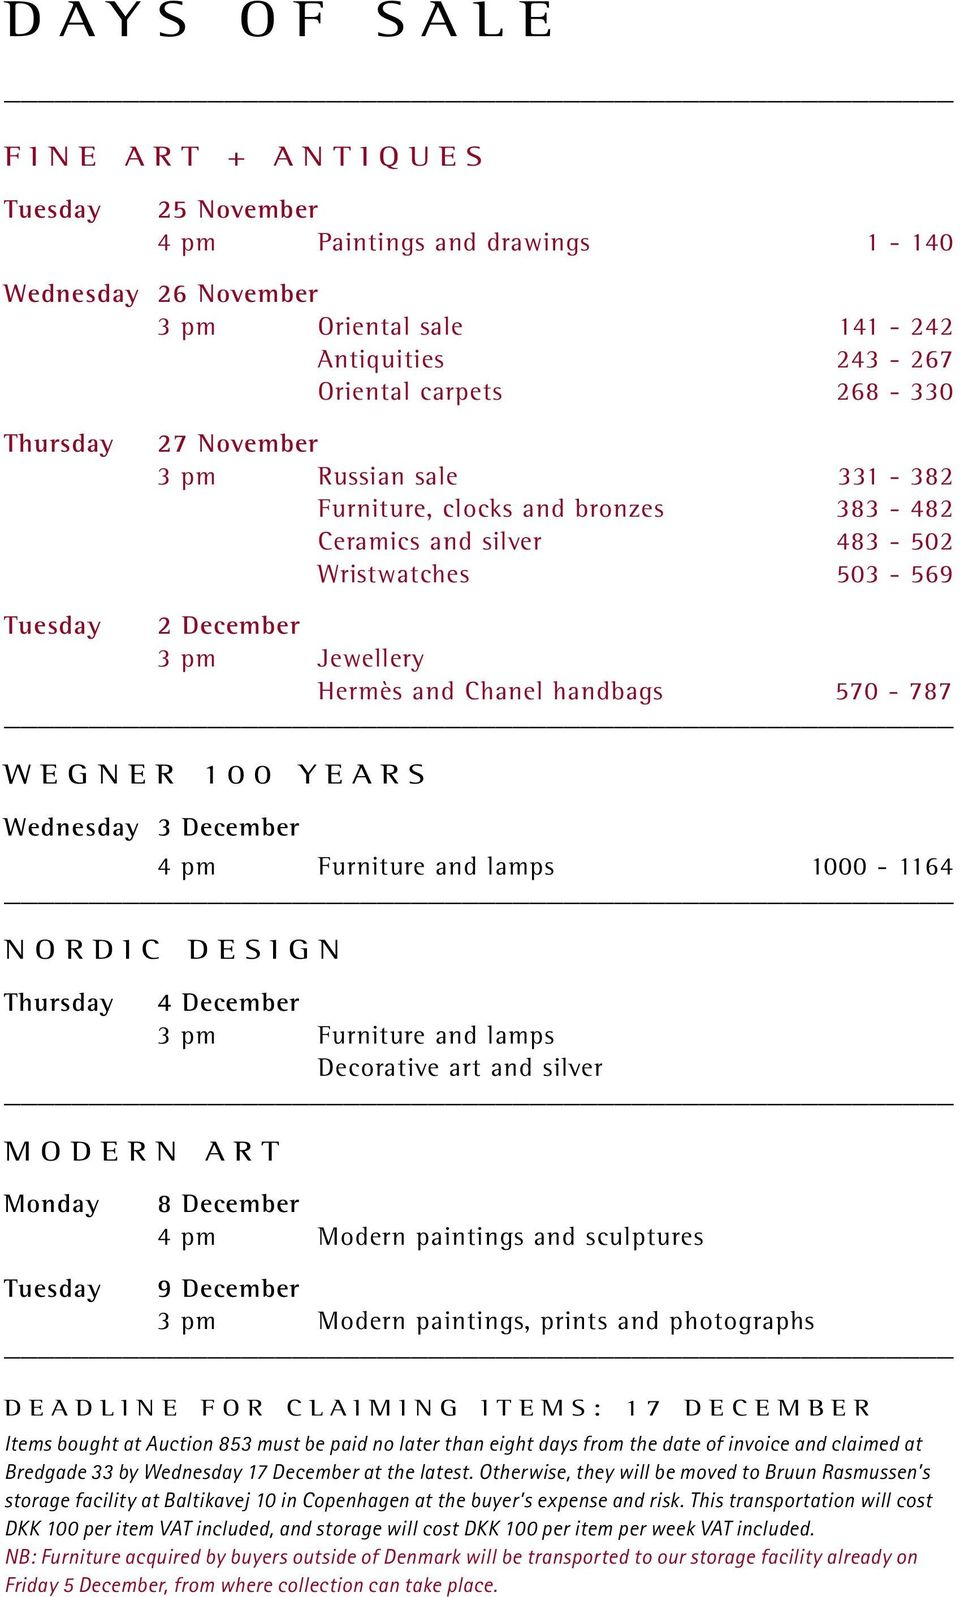 100 YEARS Wednesday 3 December 4 pm Furniture and lamps 1000-1164 NORDIC DESIGN Thursday 4 December 3 pm Furniture and lamps Decorative art and silver MODERN ART Monday 8 December 4 pm Modern